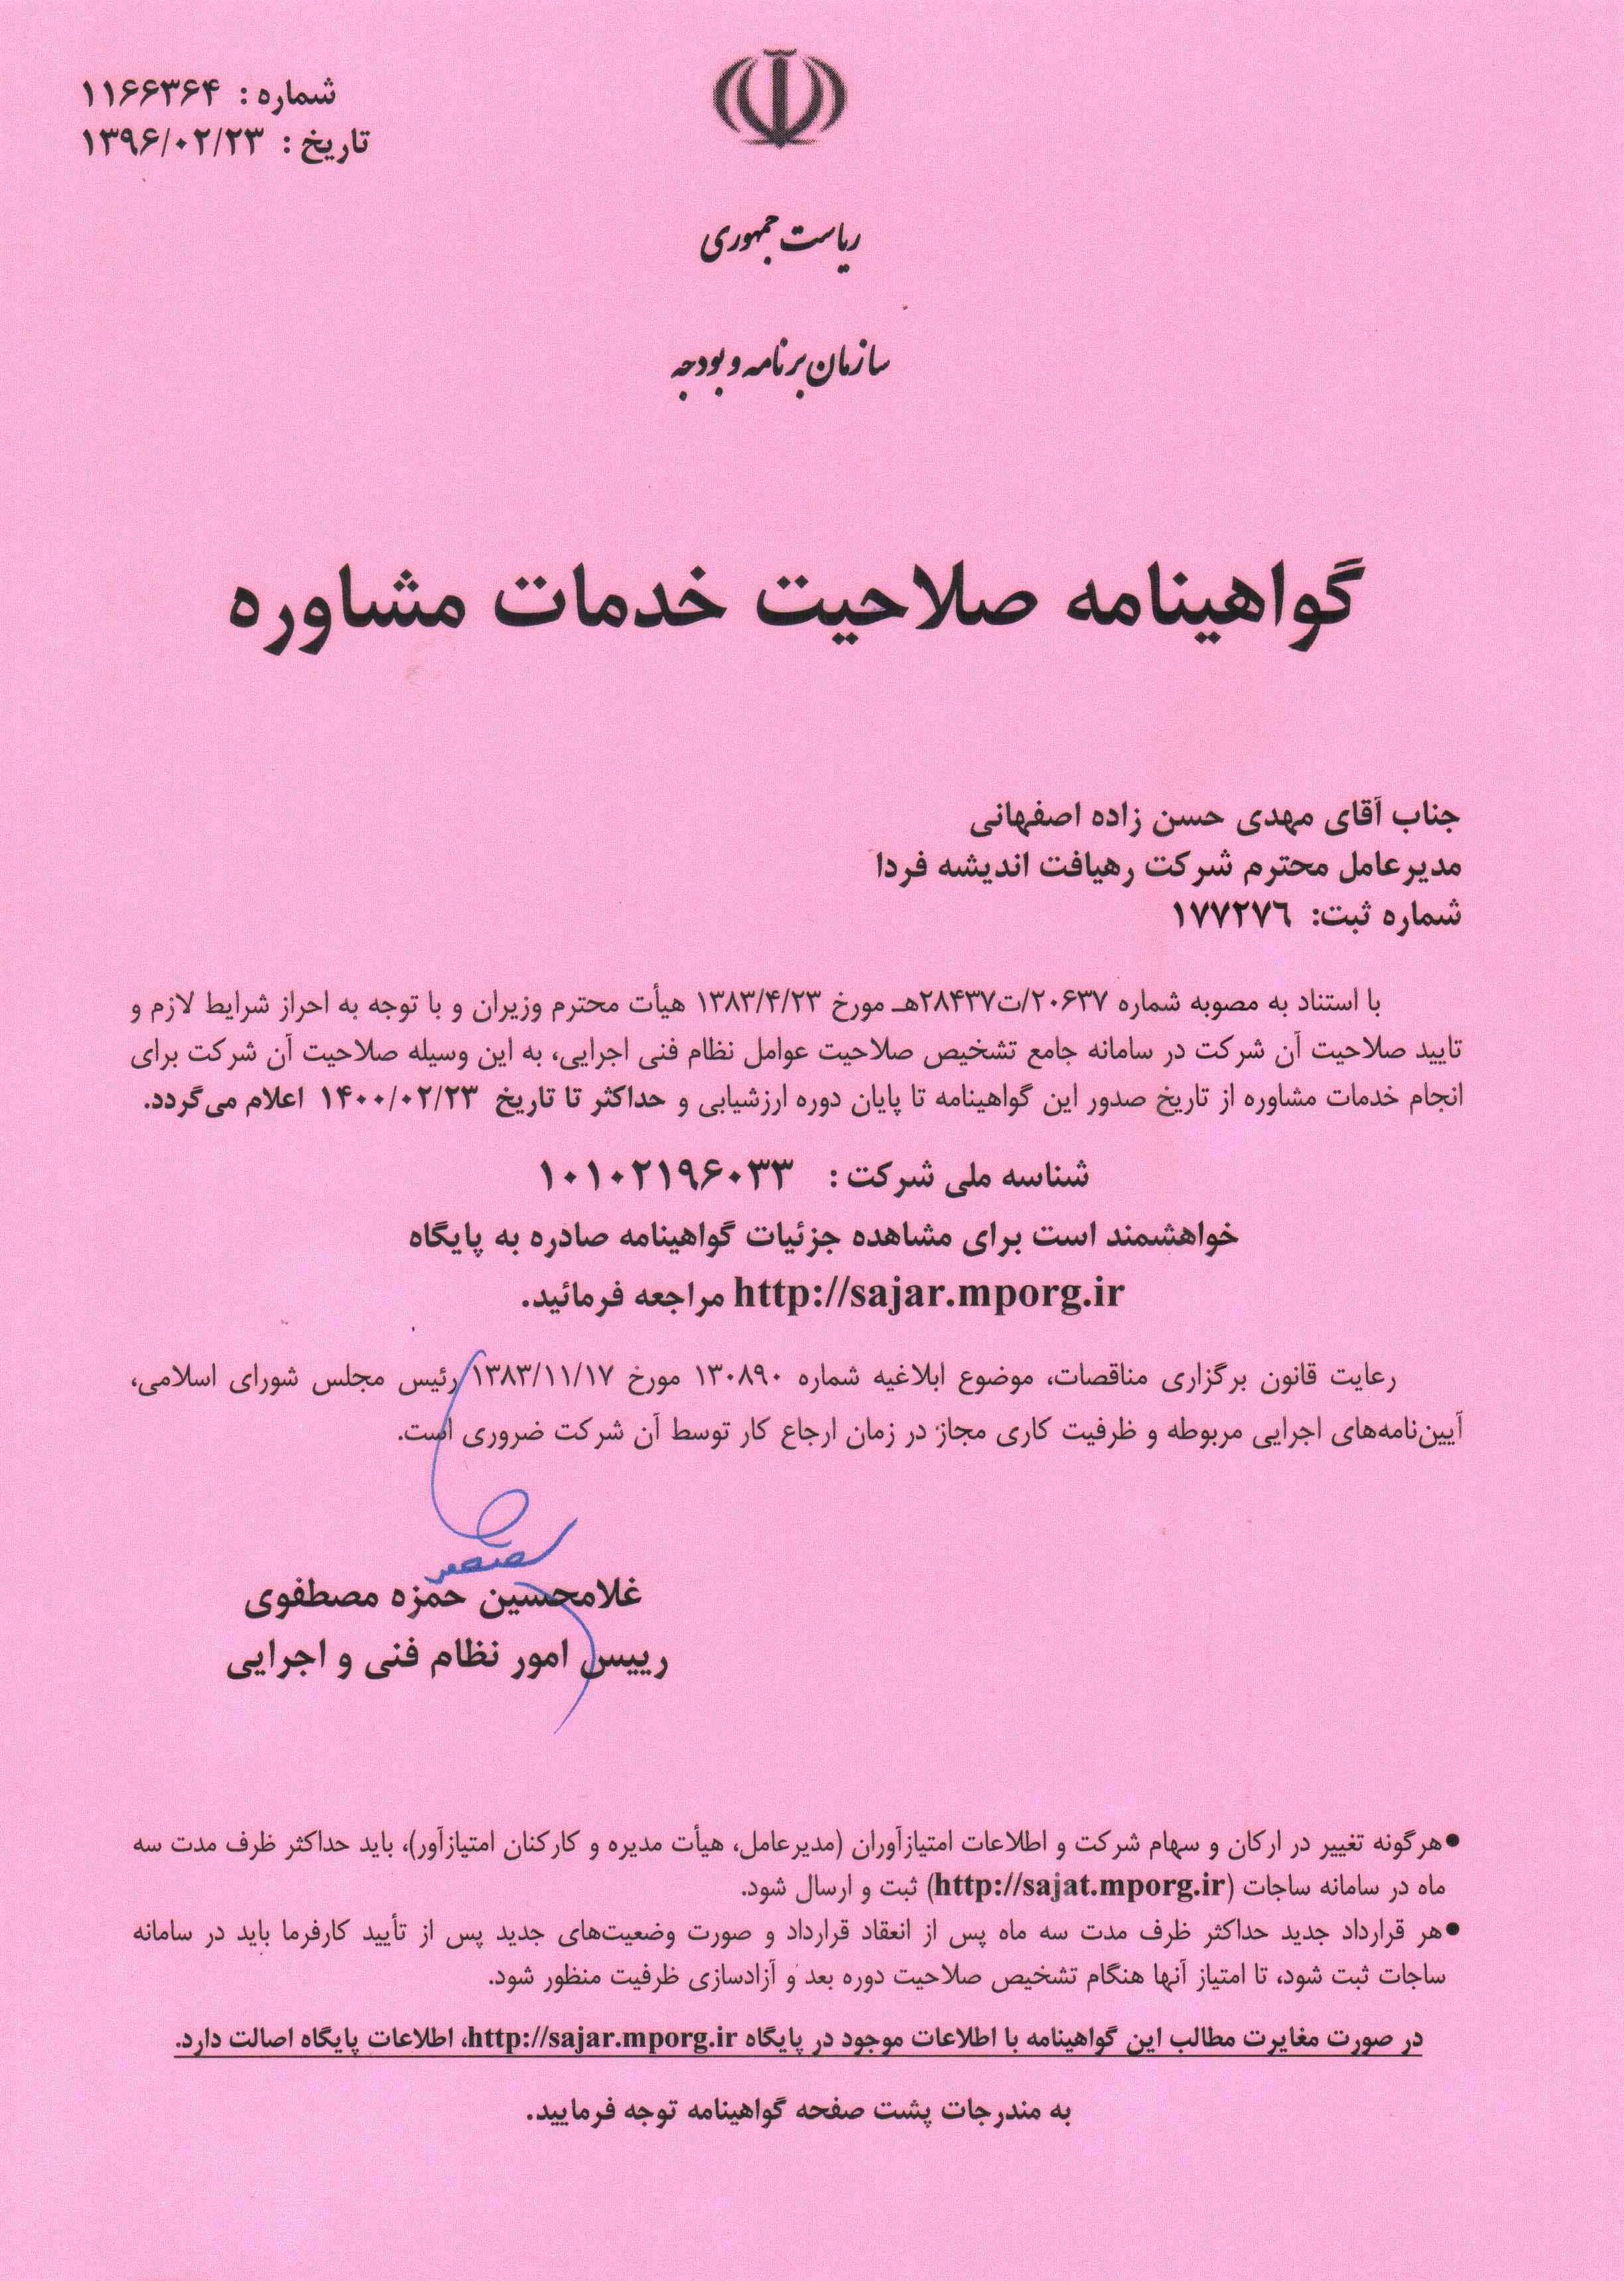 Certificate of consultancy license